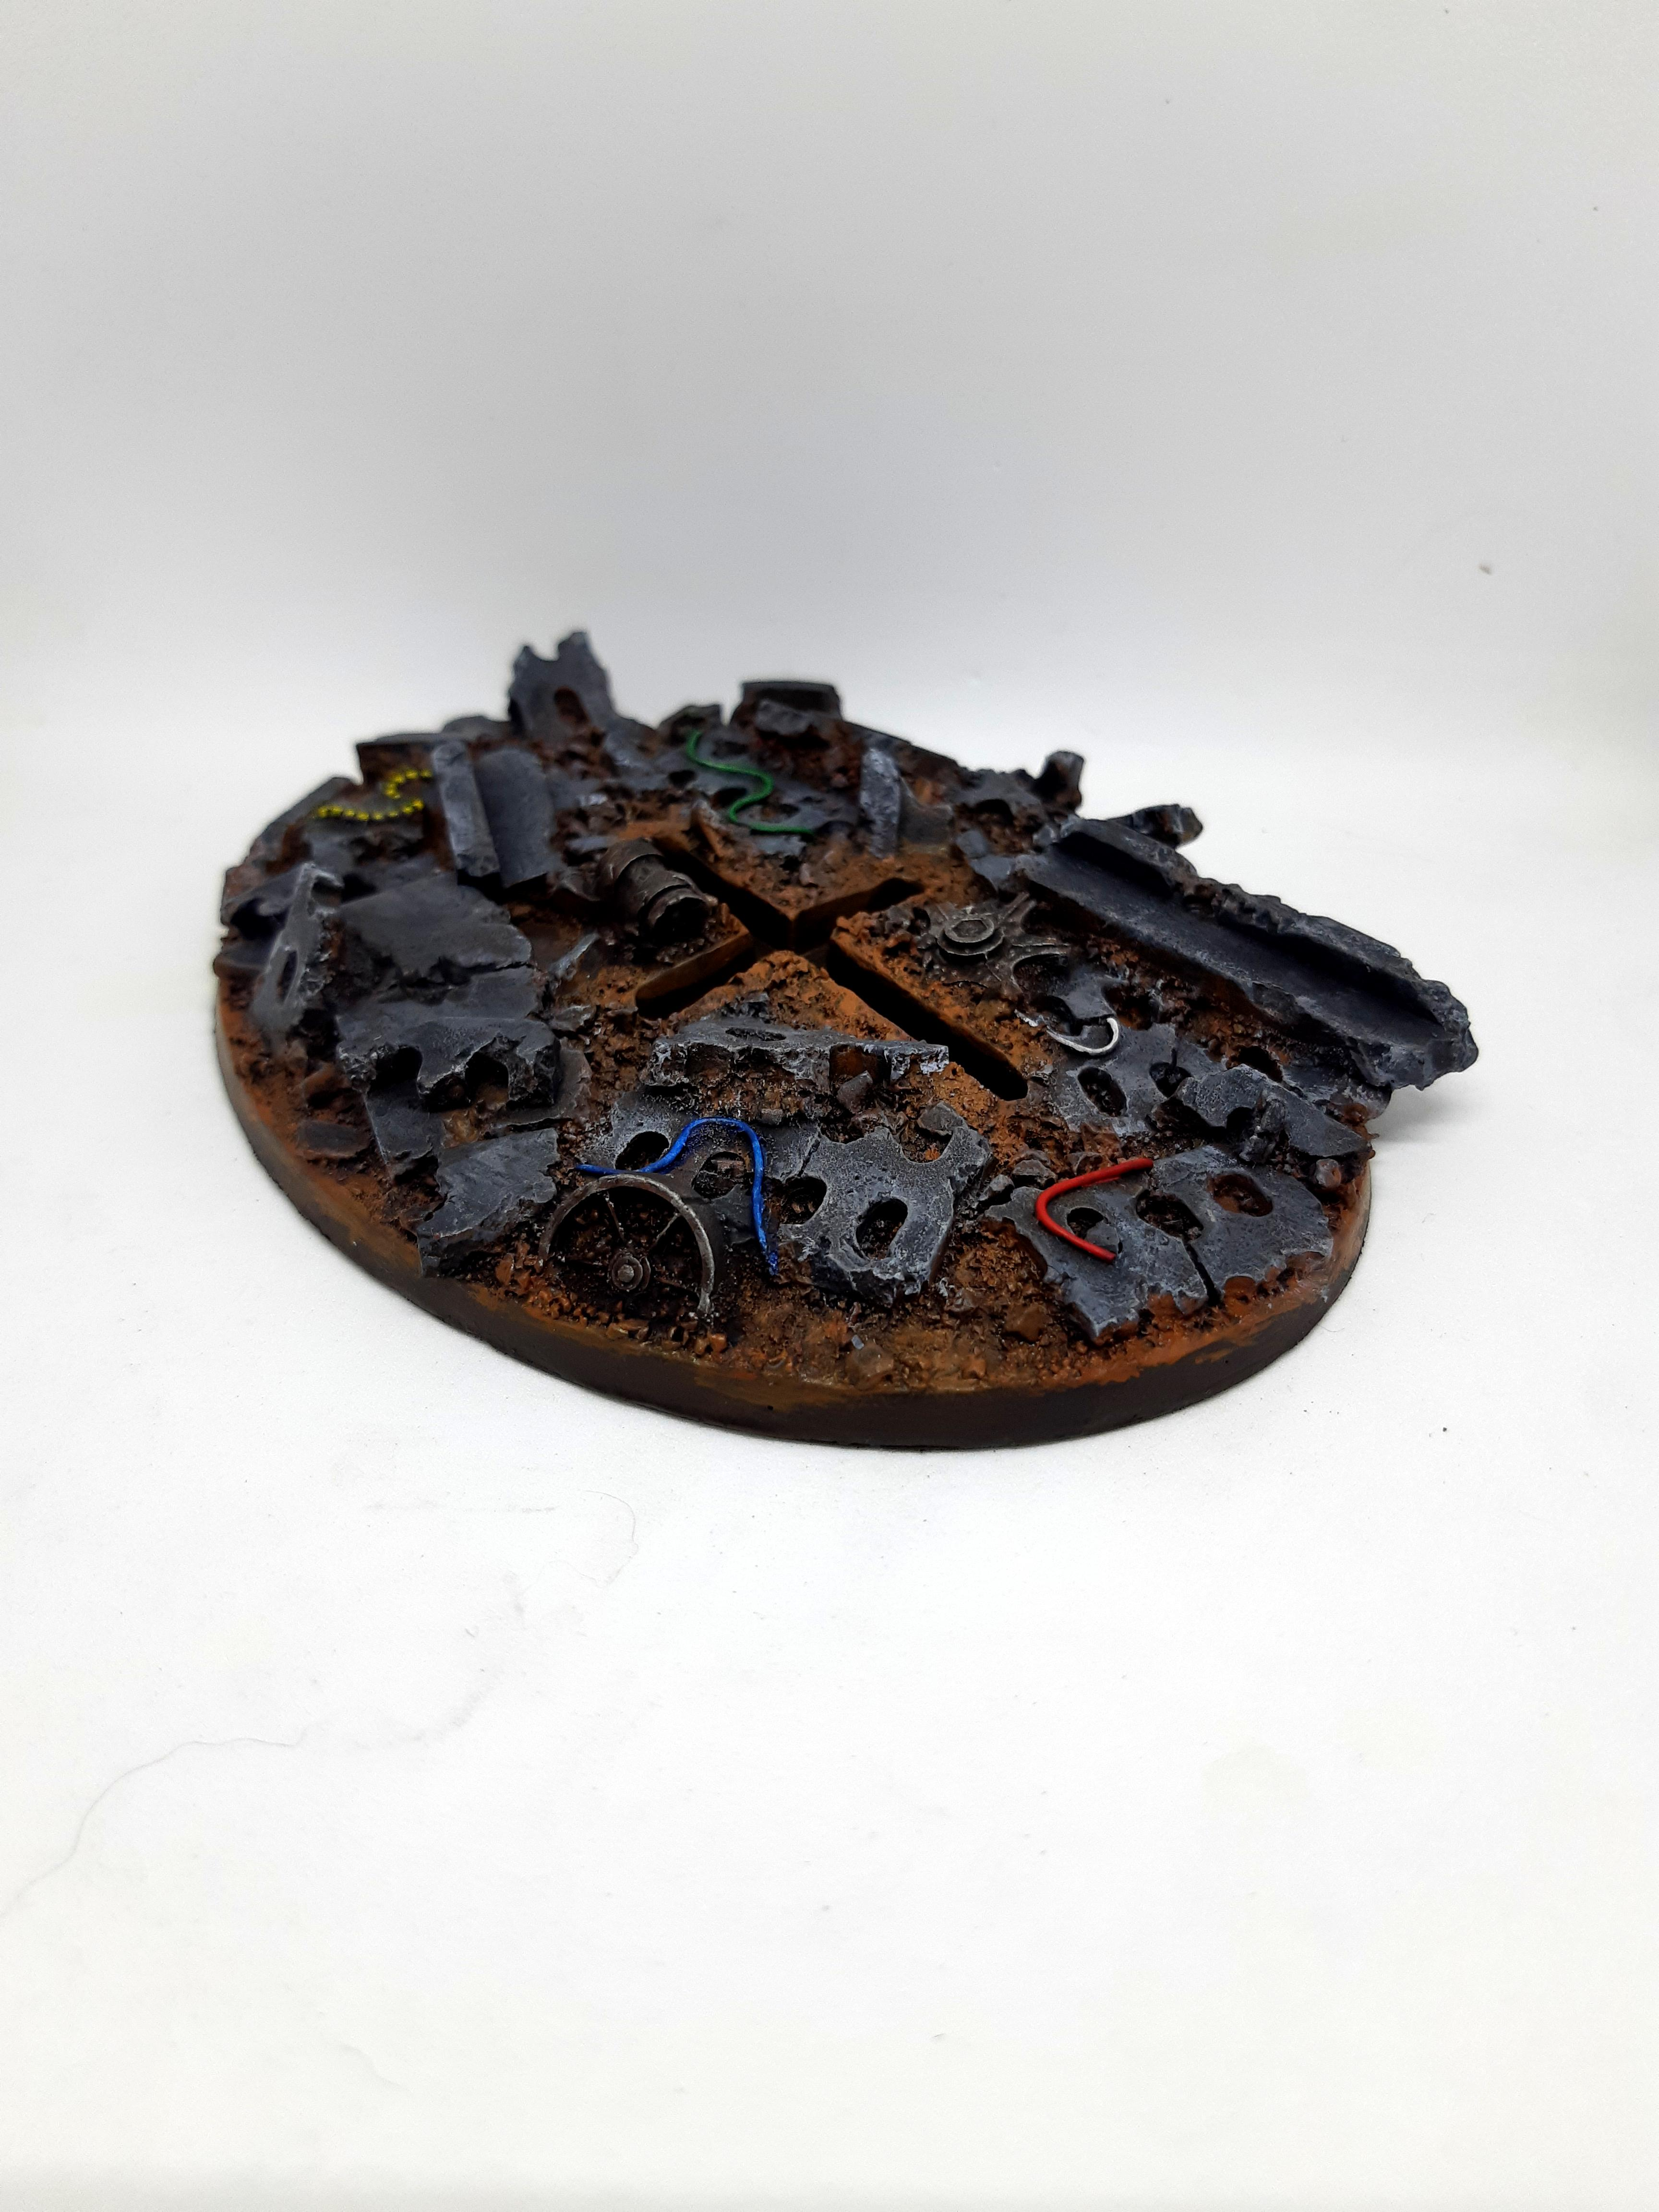 120 Mm, 120mm, Base, Flyer, Kromlech, Oval, Resin, Warhammer 40,000